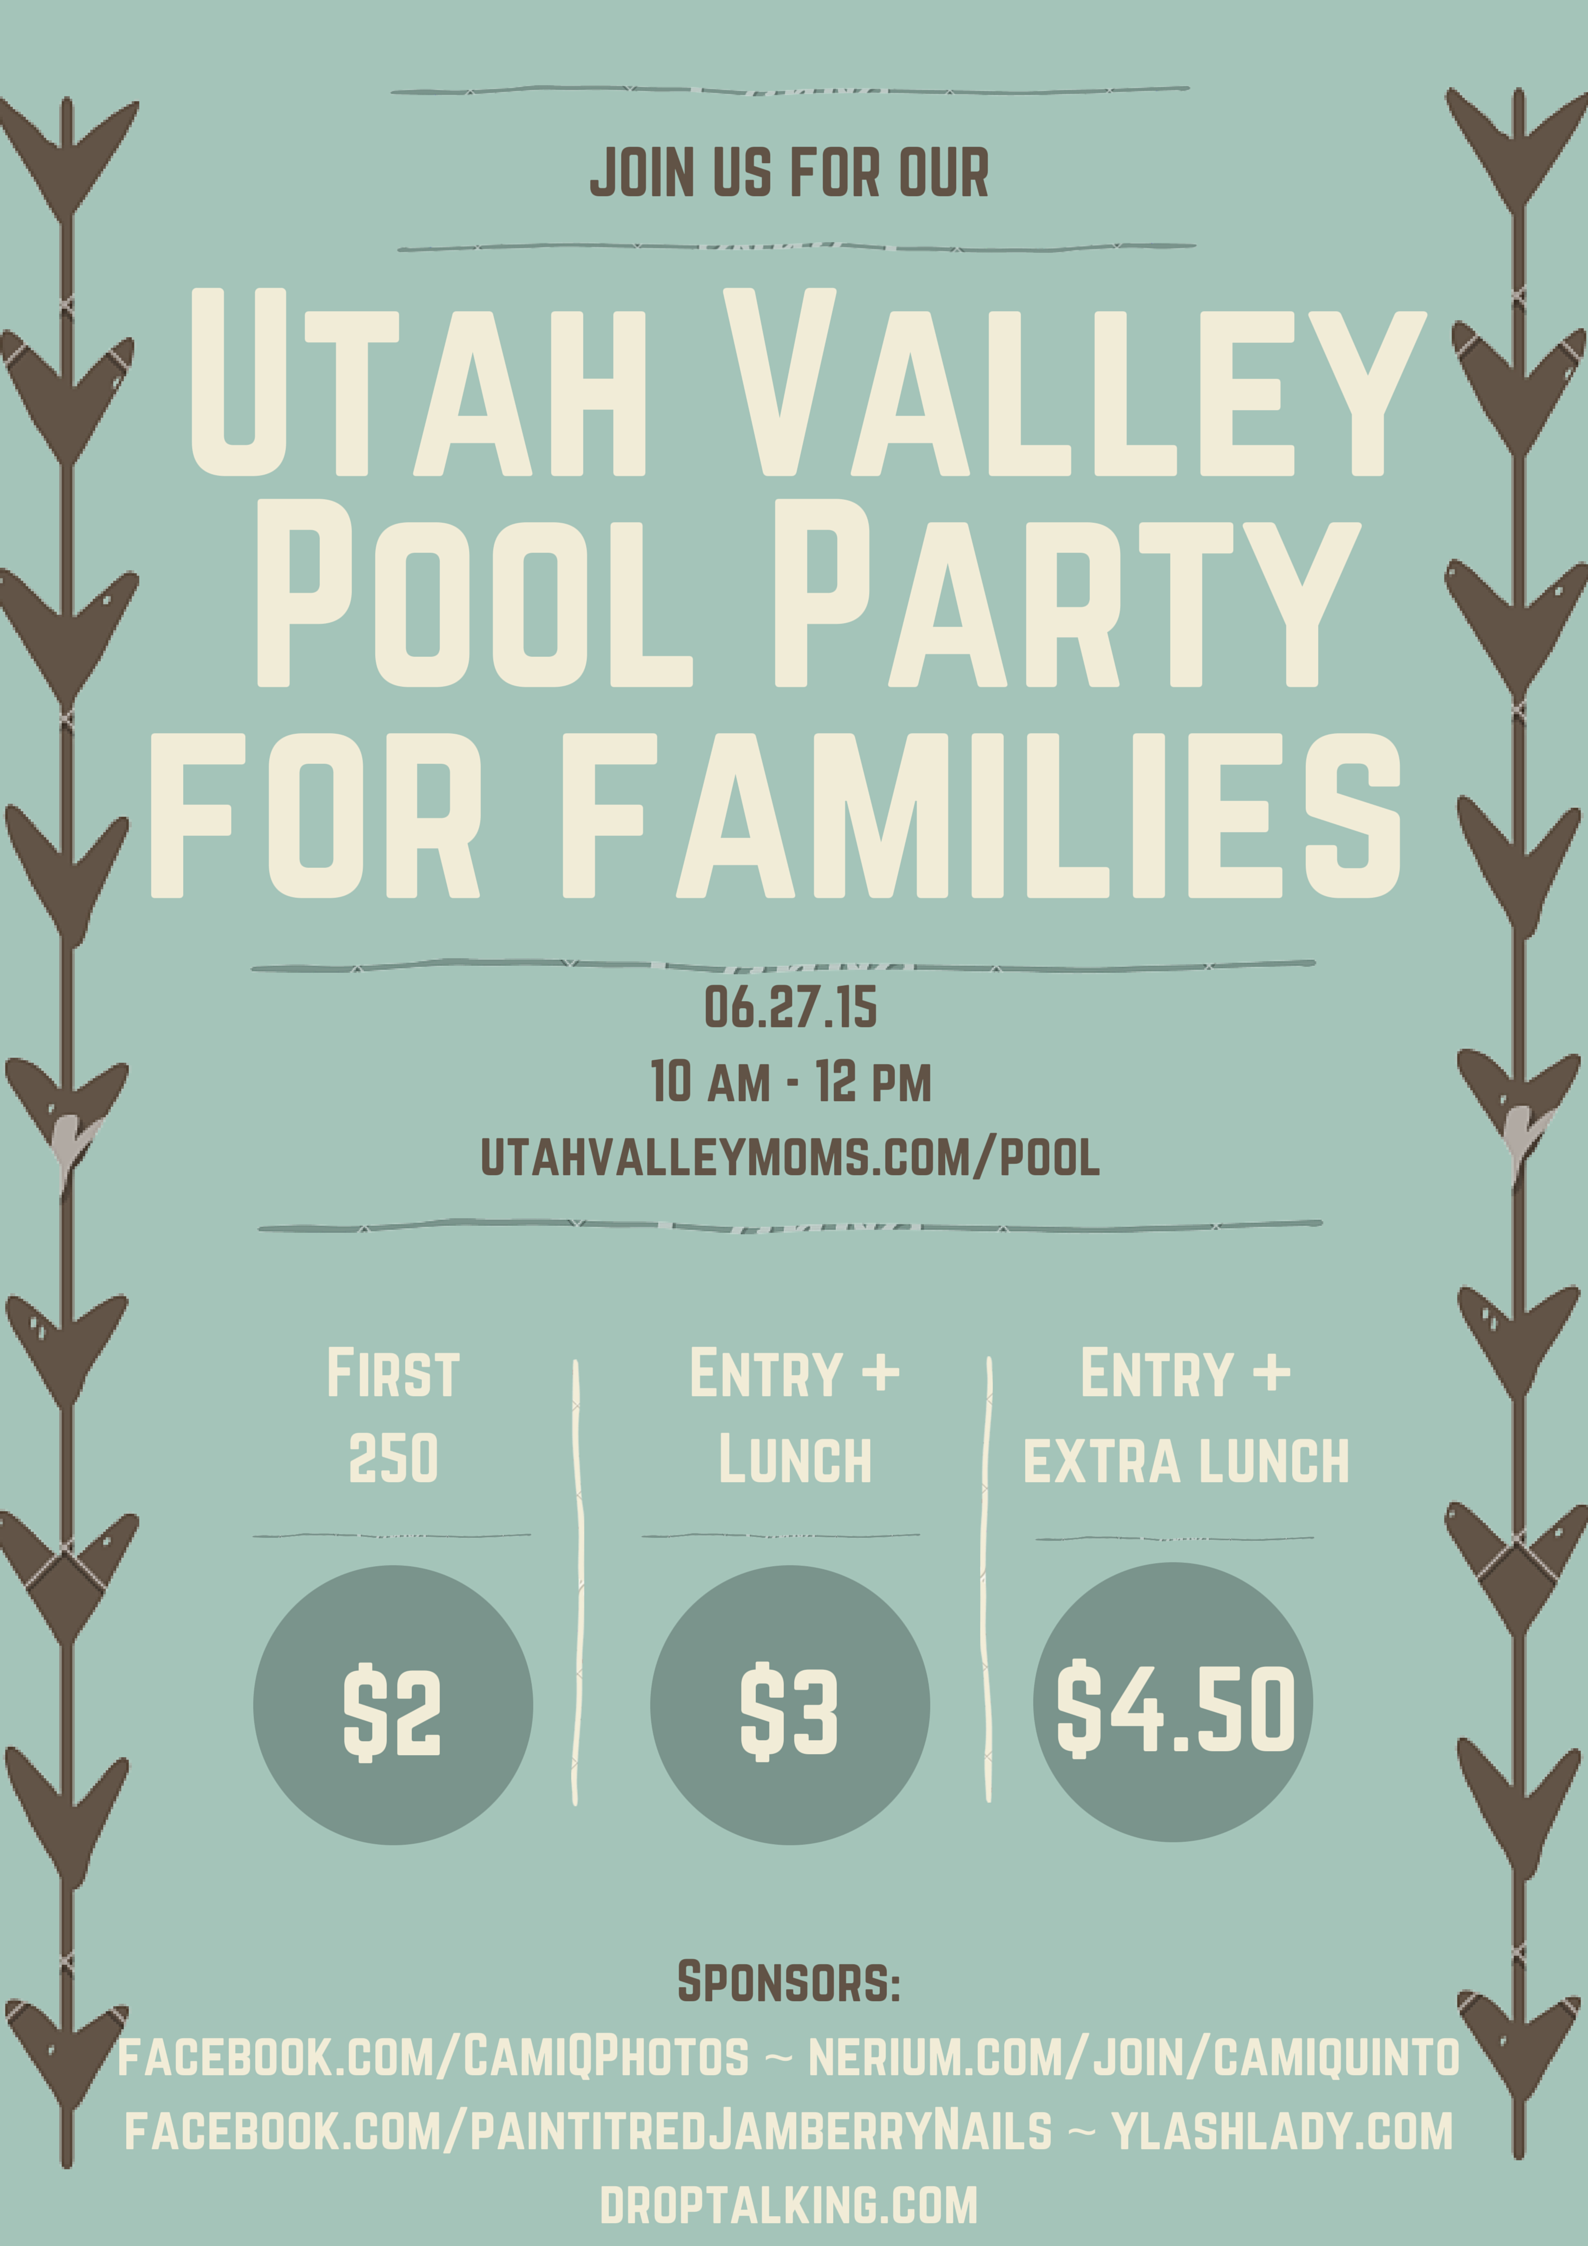 Utah Valley Pool Party